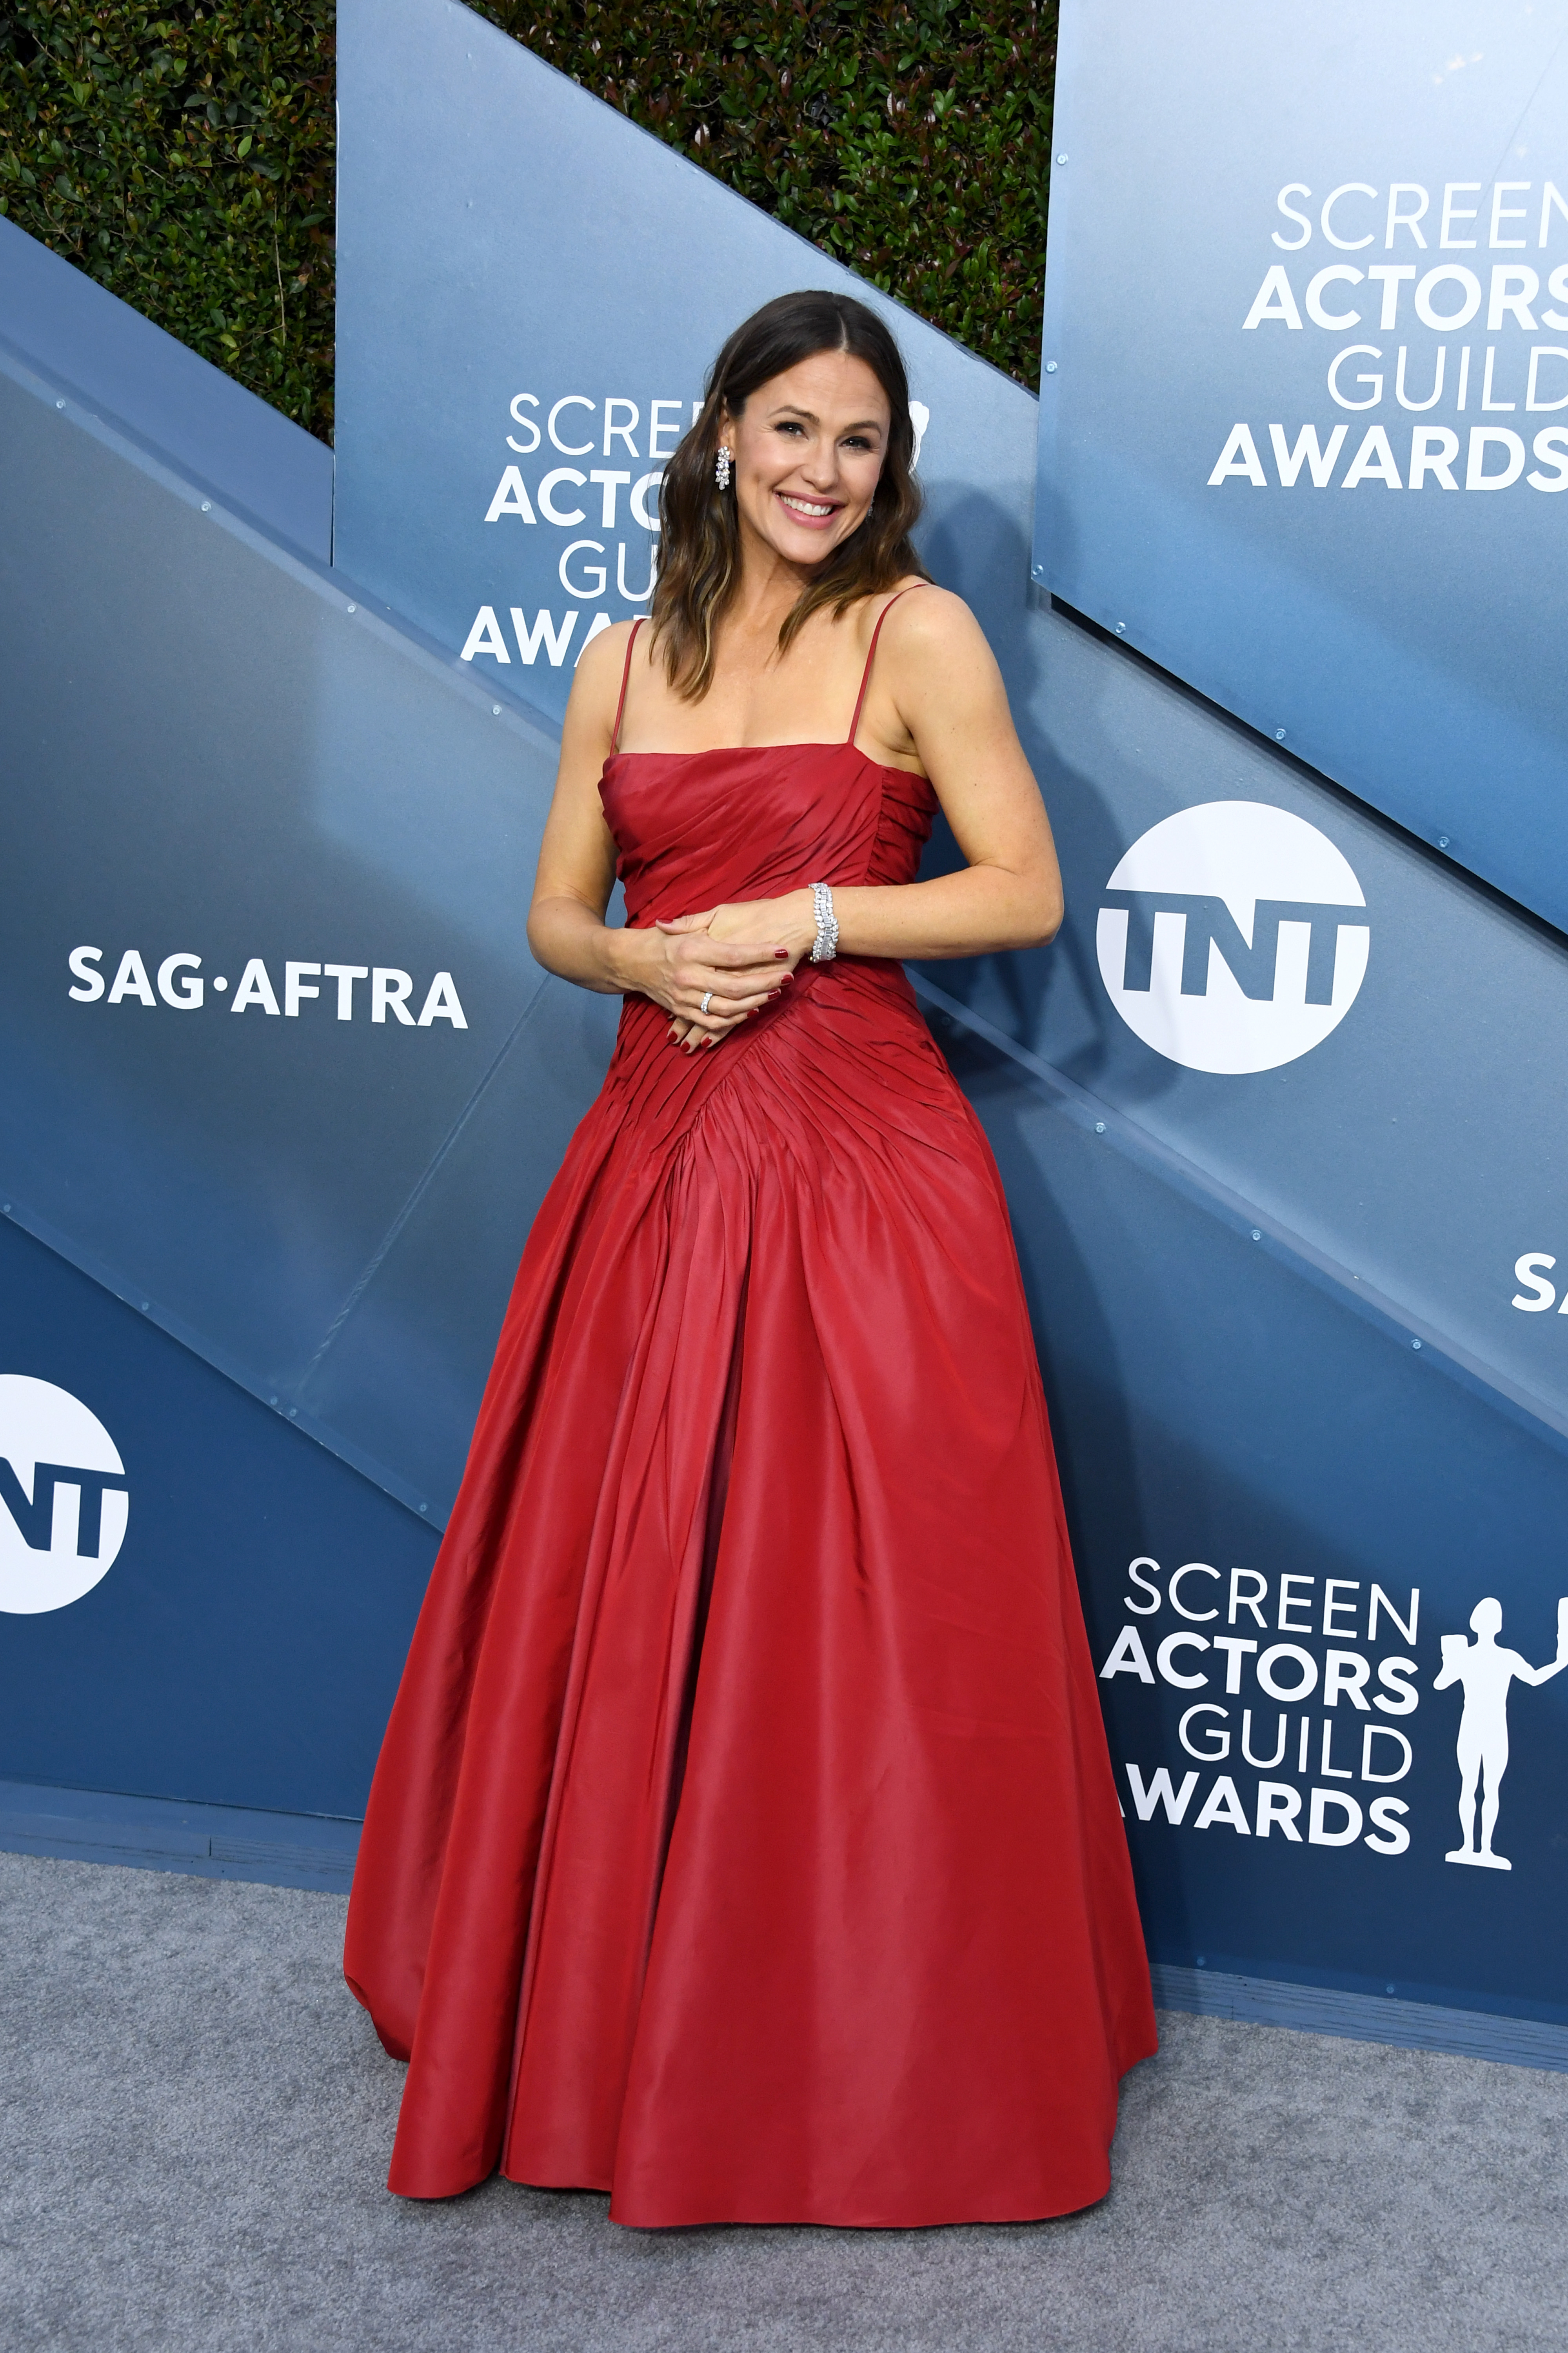 LOS ANGELES, CALIFORNIA - JANUARY 19: Jennifer Garner attends the 26th Annual Screen ActorsGuild Awards at The Shrine Auditorium on January 19, 2020 in Los Angeles, California. (Photo by Jon Kopaloff/Getty Images)